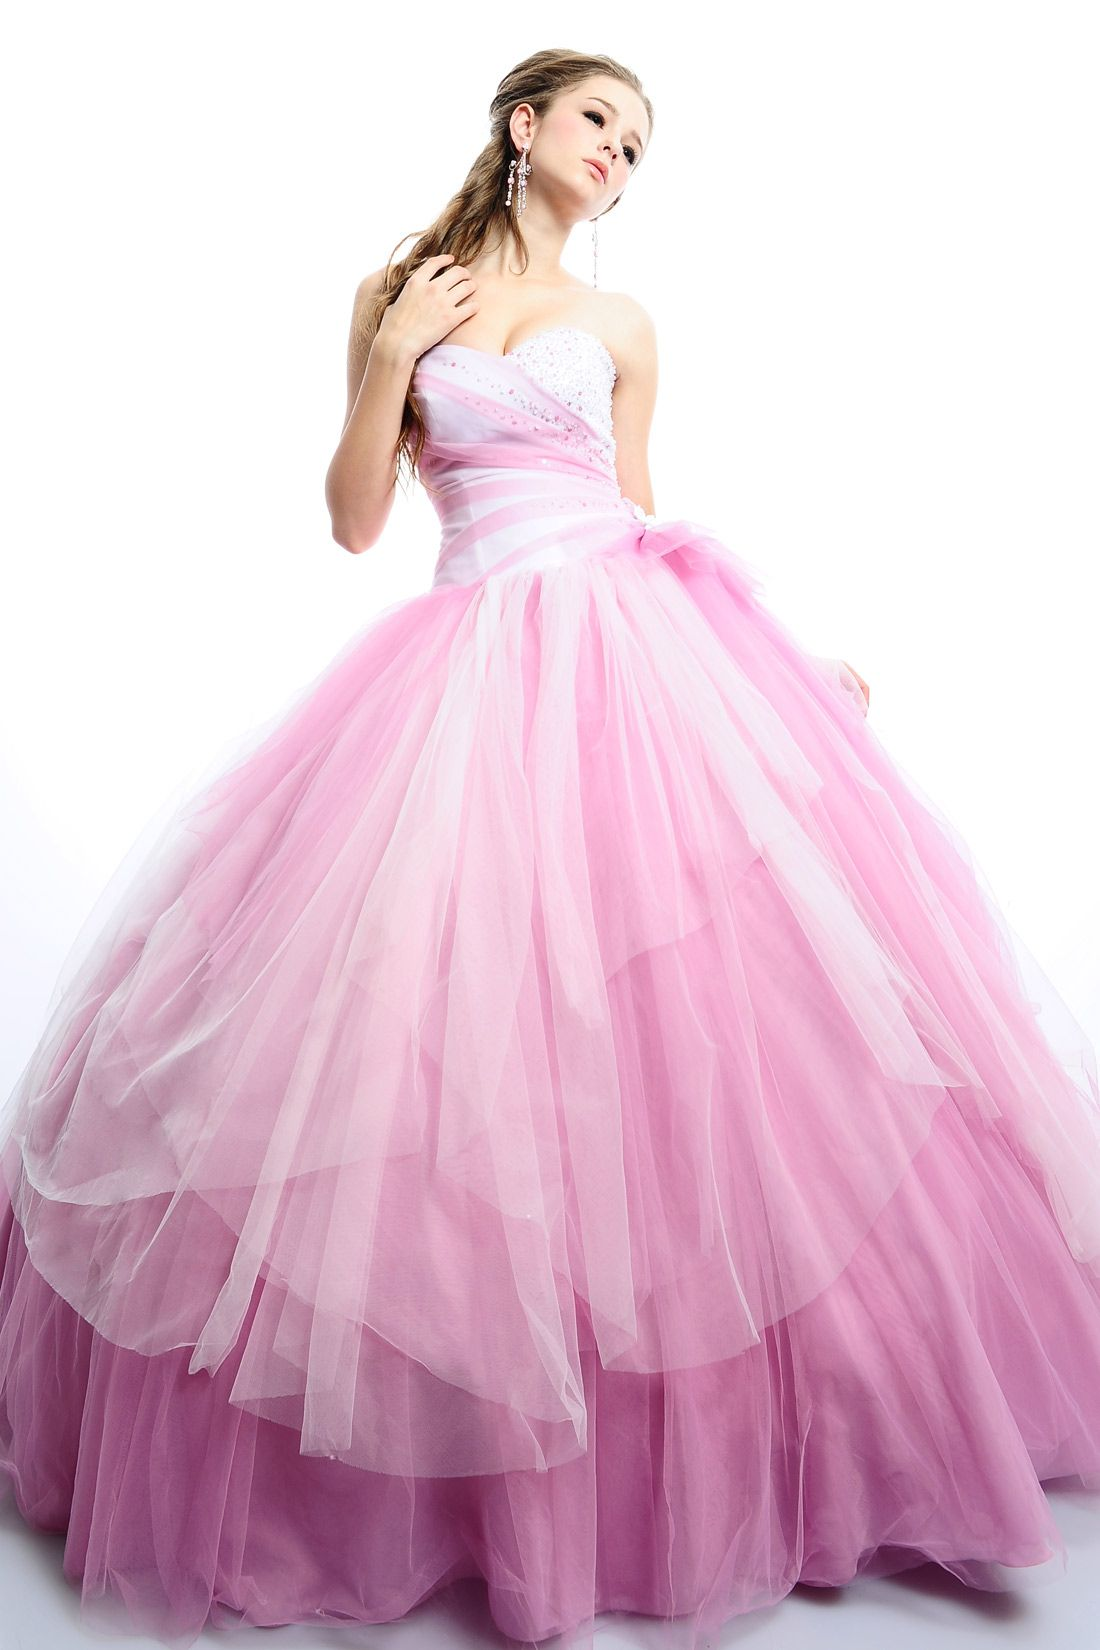 17 Best images about Quinceanera Gown on Pinterest | One shoulder ...